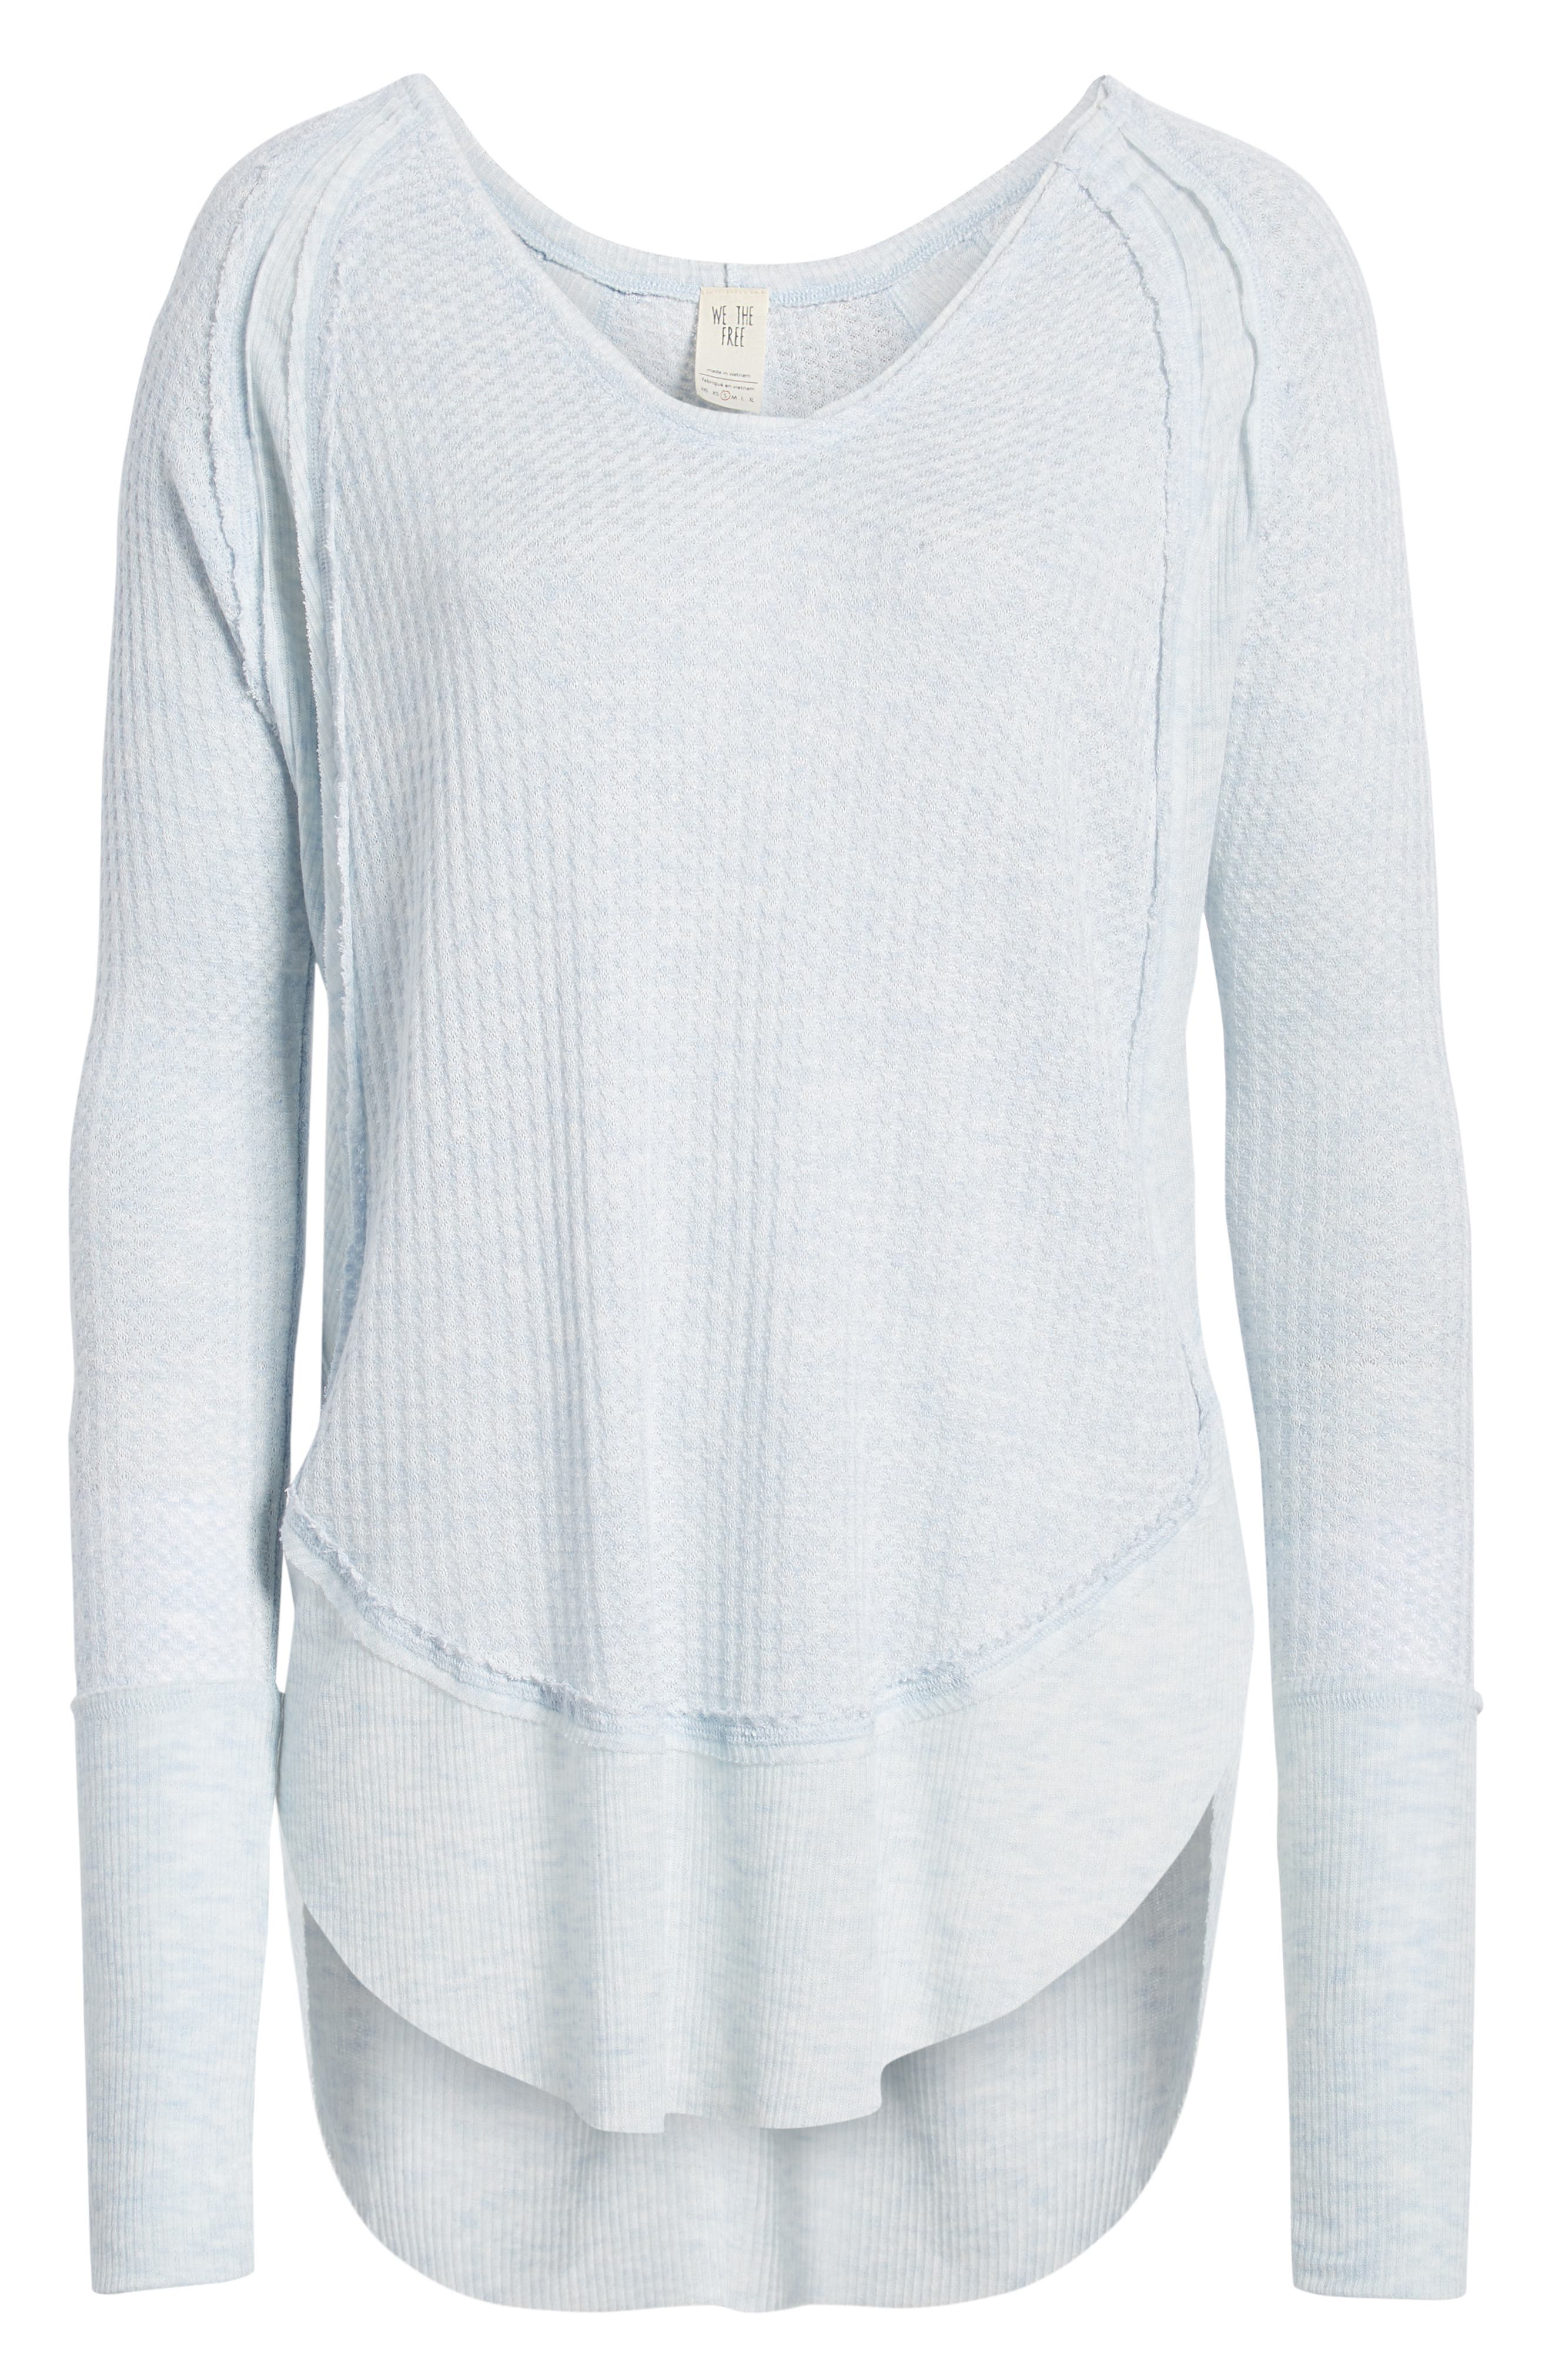 FREE PEOPLE,                             We the Free by Free People Catalina V-Neck Thermal Top,                             Alternate thumbnail 6, color,                             SKY